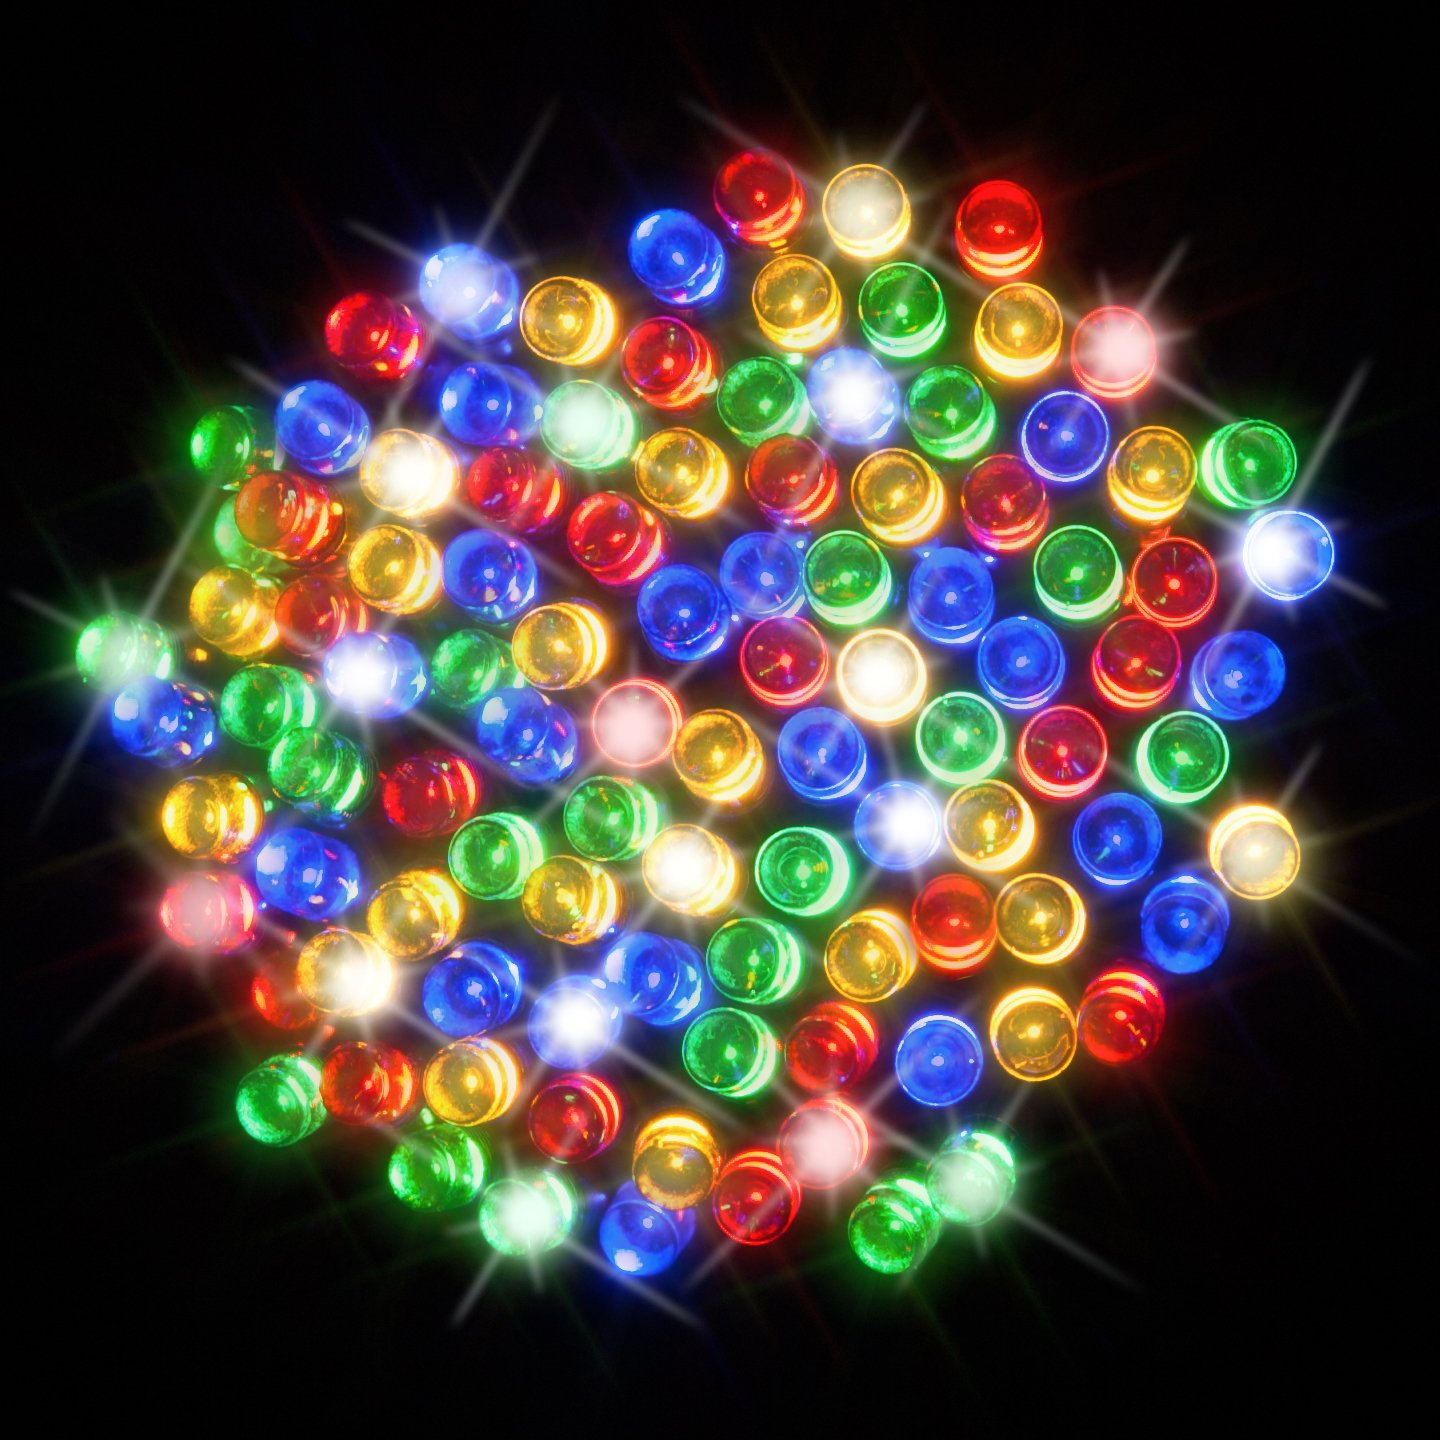 100 Multi Colour LED Solar Powered Fairy Lights - Waterproof Solar Decoration String Lights with Built-in Night Sensor - for Christmas, Outdoor, Garden, Fence, Patio, Yard, Walkway, Driveway, Shed, Garage, Path, Ornament, Stairs and Outside by SPV Lights: